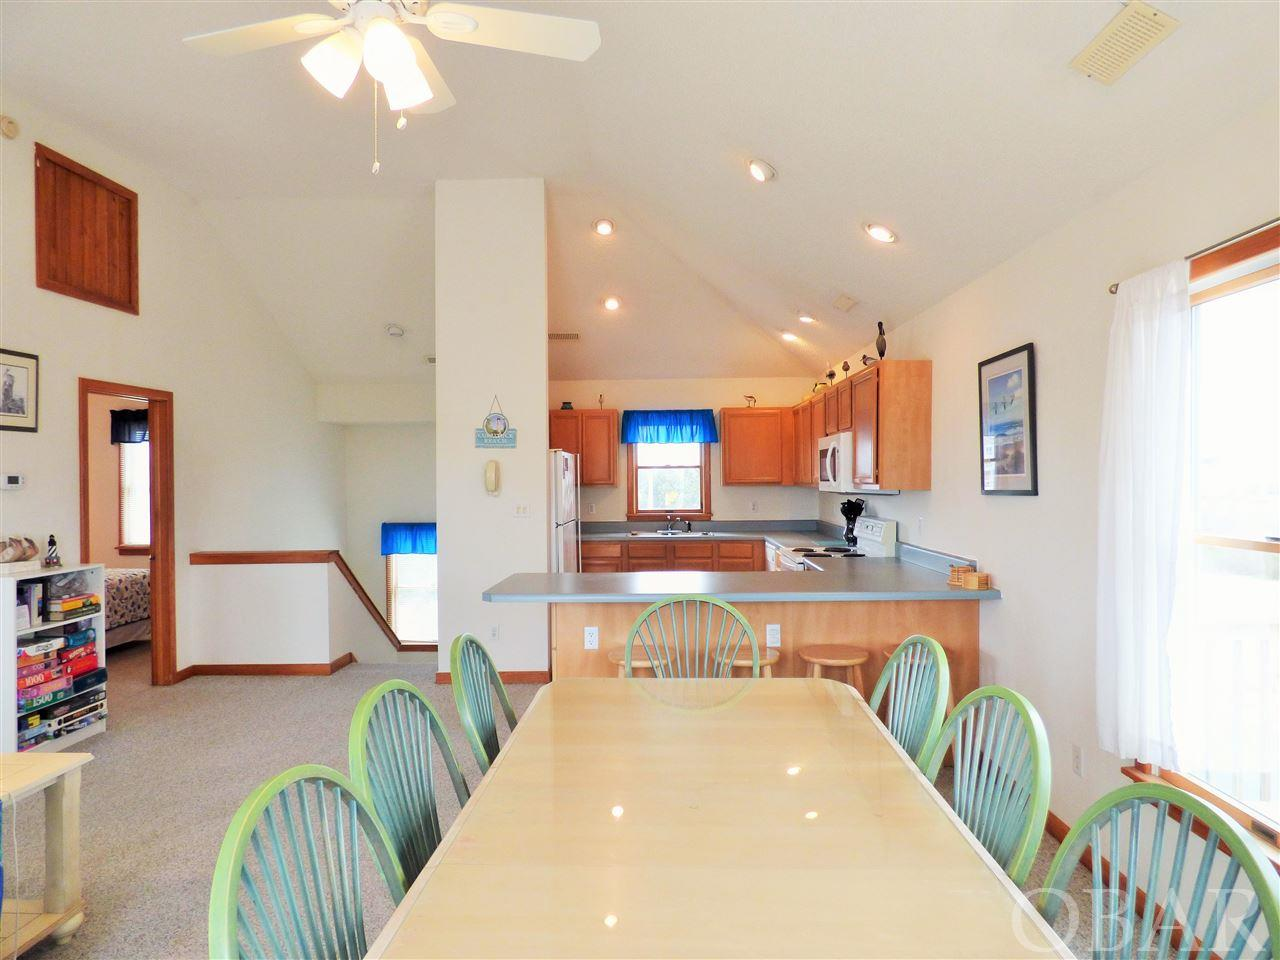 618 Staysail Crescent,Corolla,NC 27927,5 Bedrooms Bedrooms,4 BathroomsBathrooms,Residential,Staysail Crescent,99545